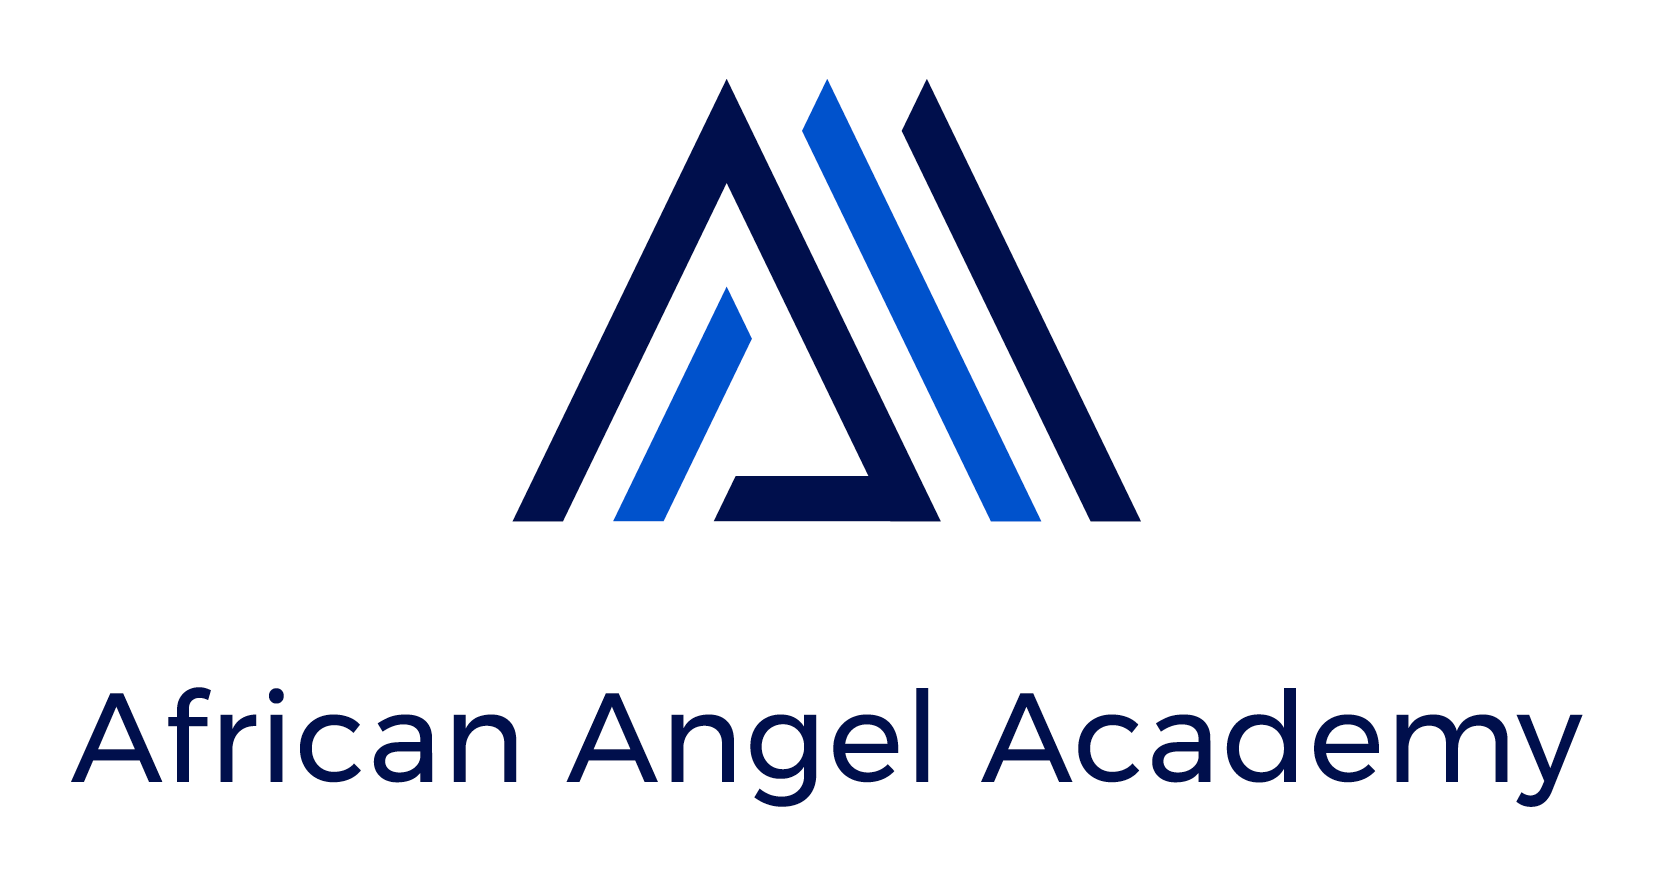 African Angel Academy